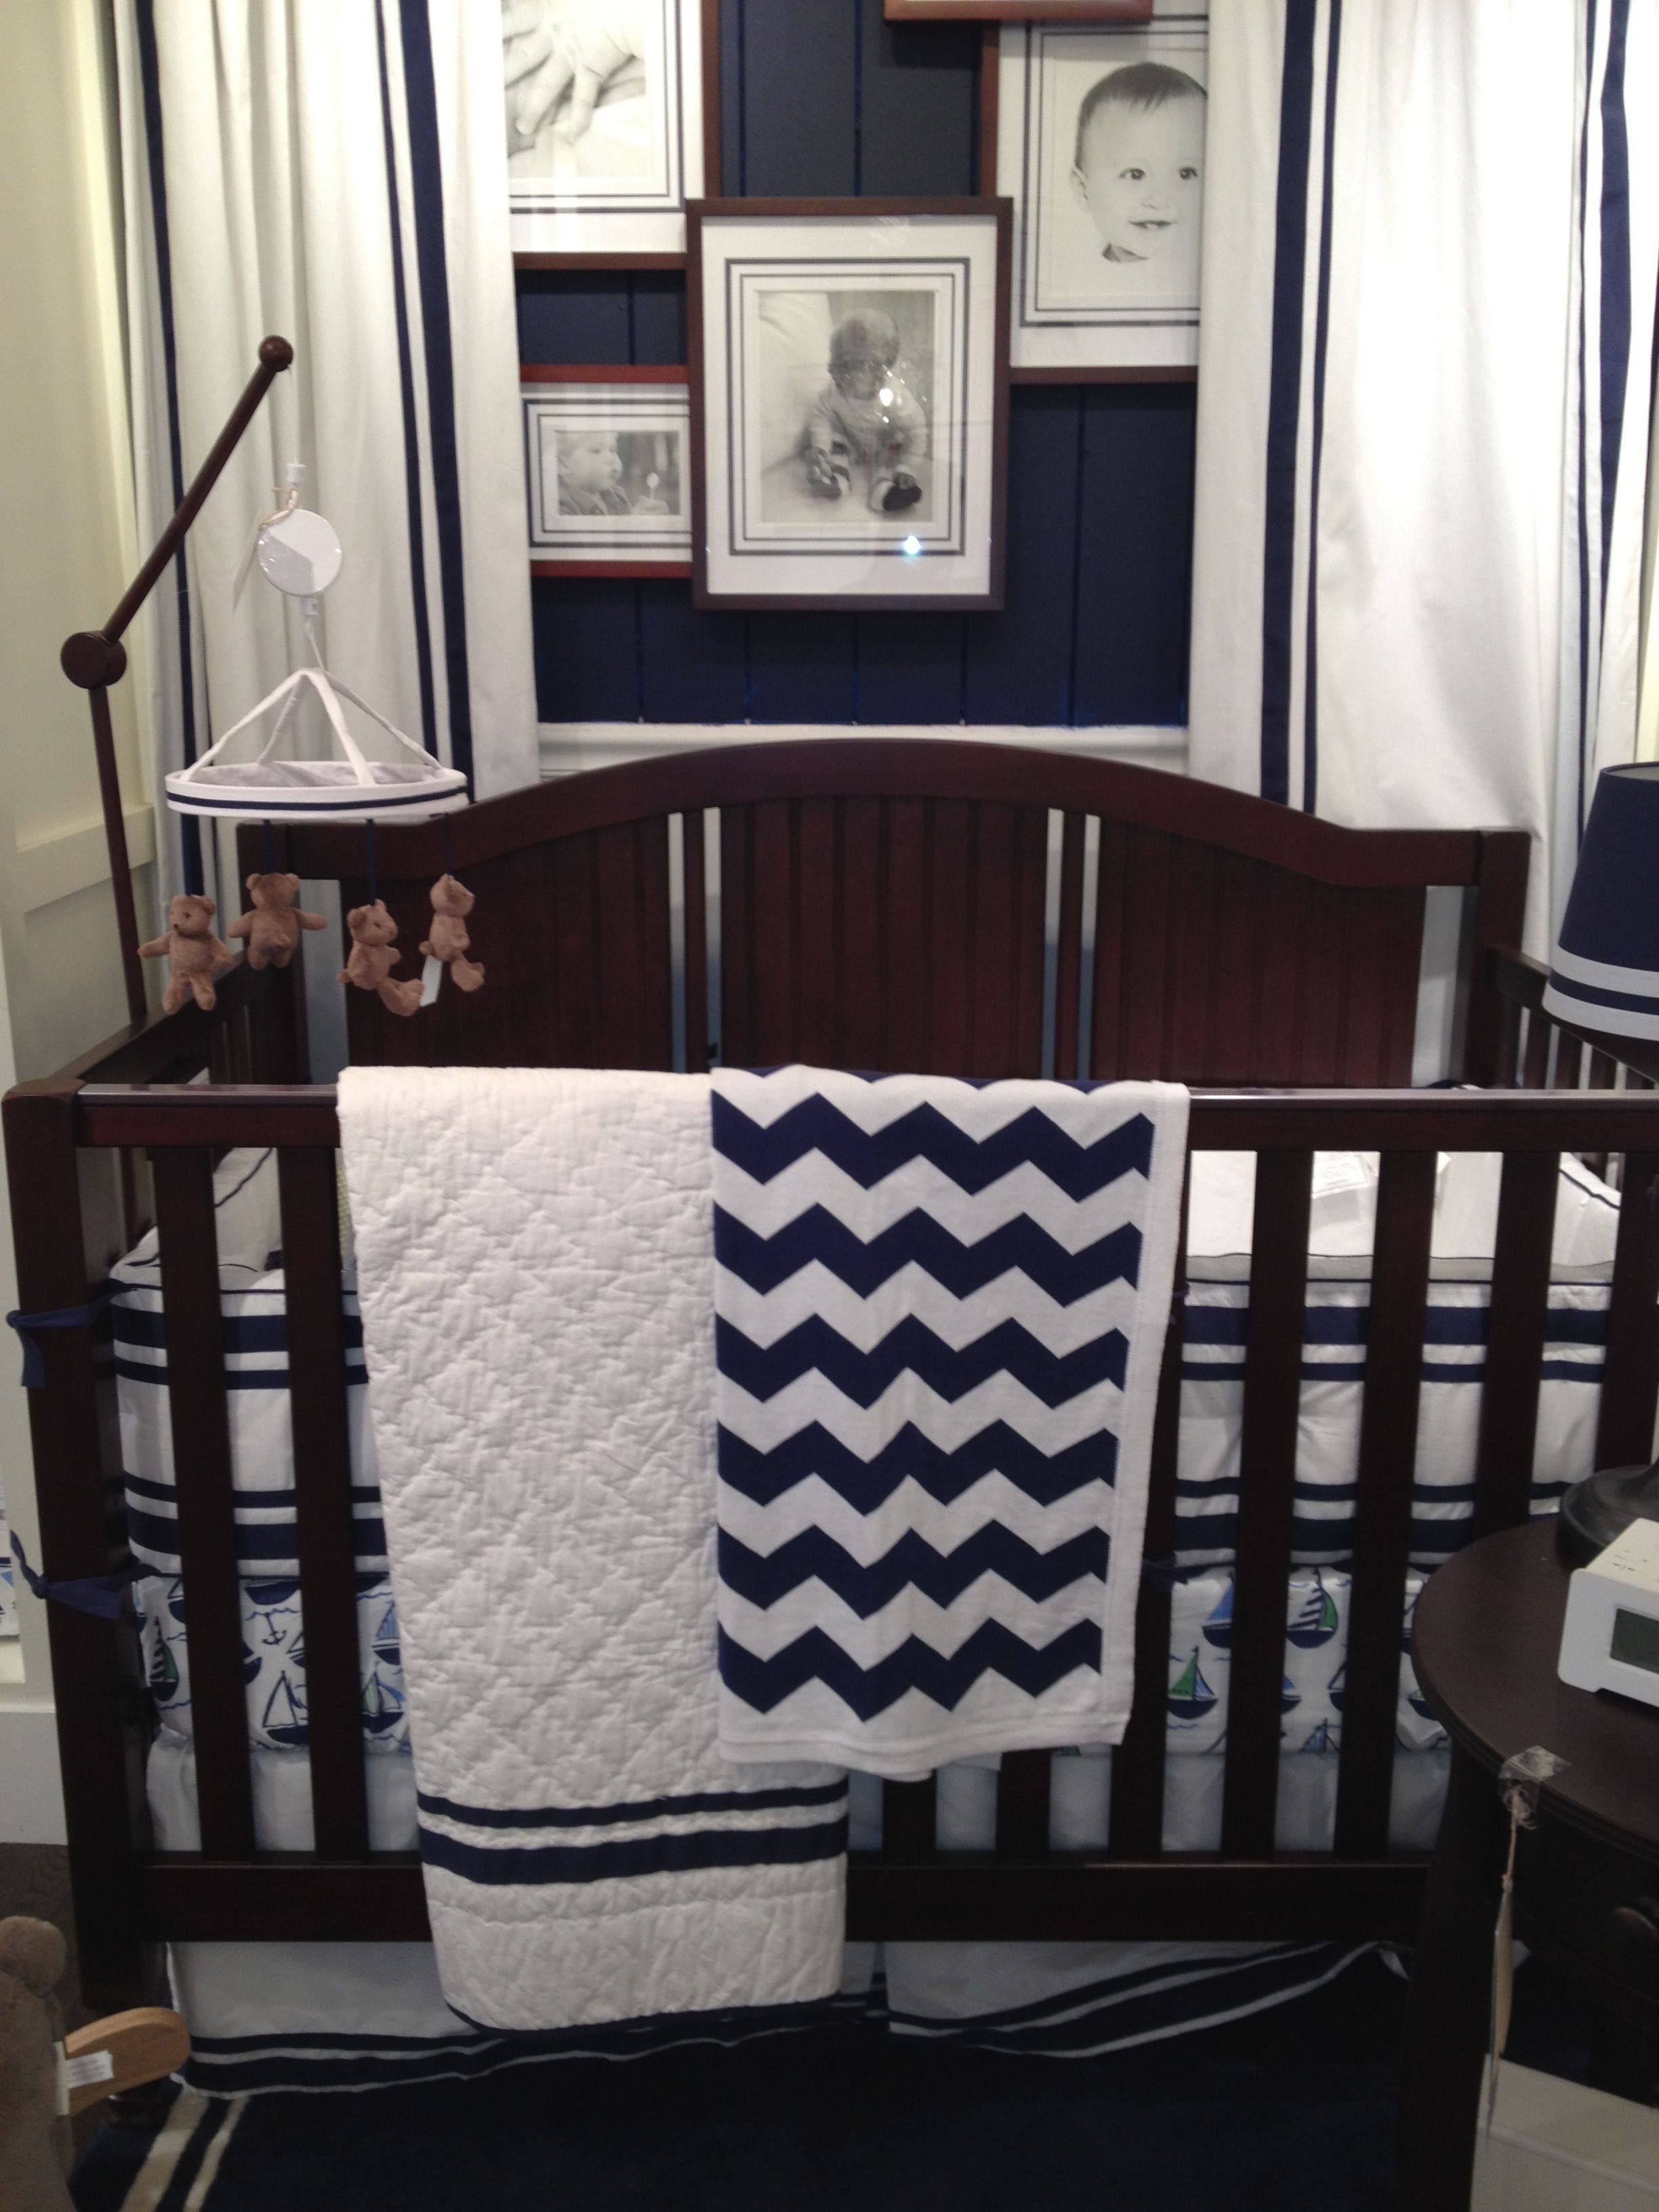 Pottery barn navy Harper nursery. Debating on these window